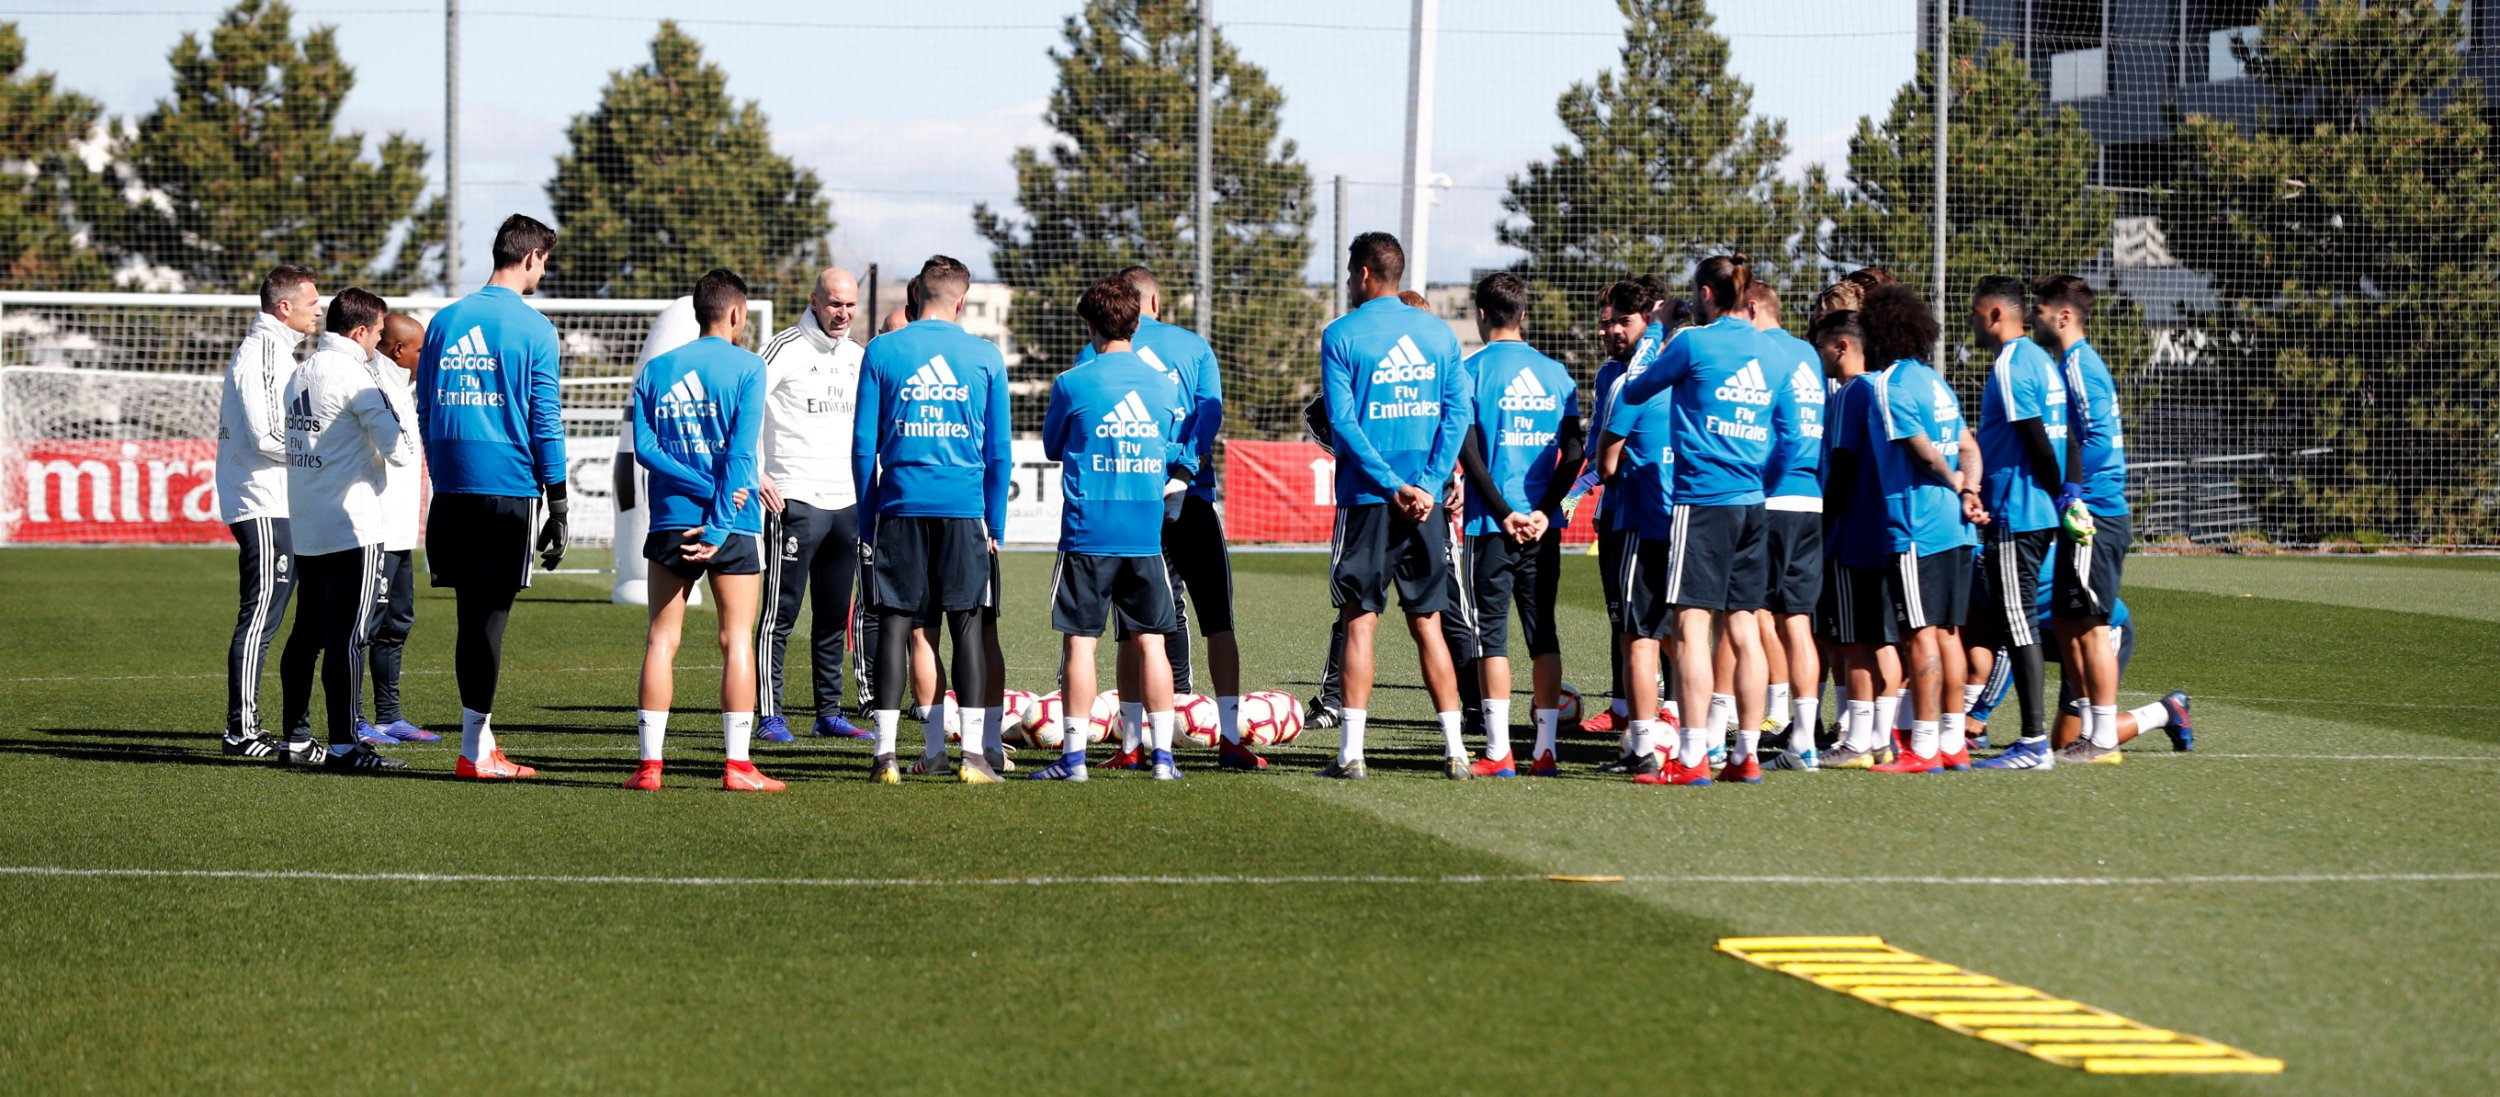 epa07433723 A handout photo made available by Real Madrid of Real Madrid's new head coach Zinedine Zidane (6-L) leading his first training session after his appointment at Valdebebas sport complex, outside Madrid, Spain, 13 March 2019. EPA/REAL MADRID HANDOUT HANDOUT EDITORIAL USE ONLY/NO SALES